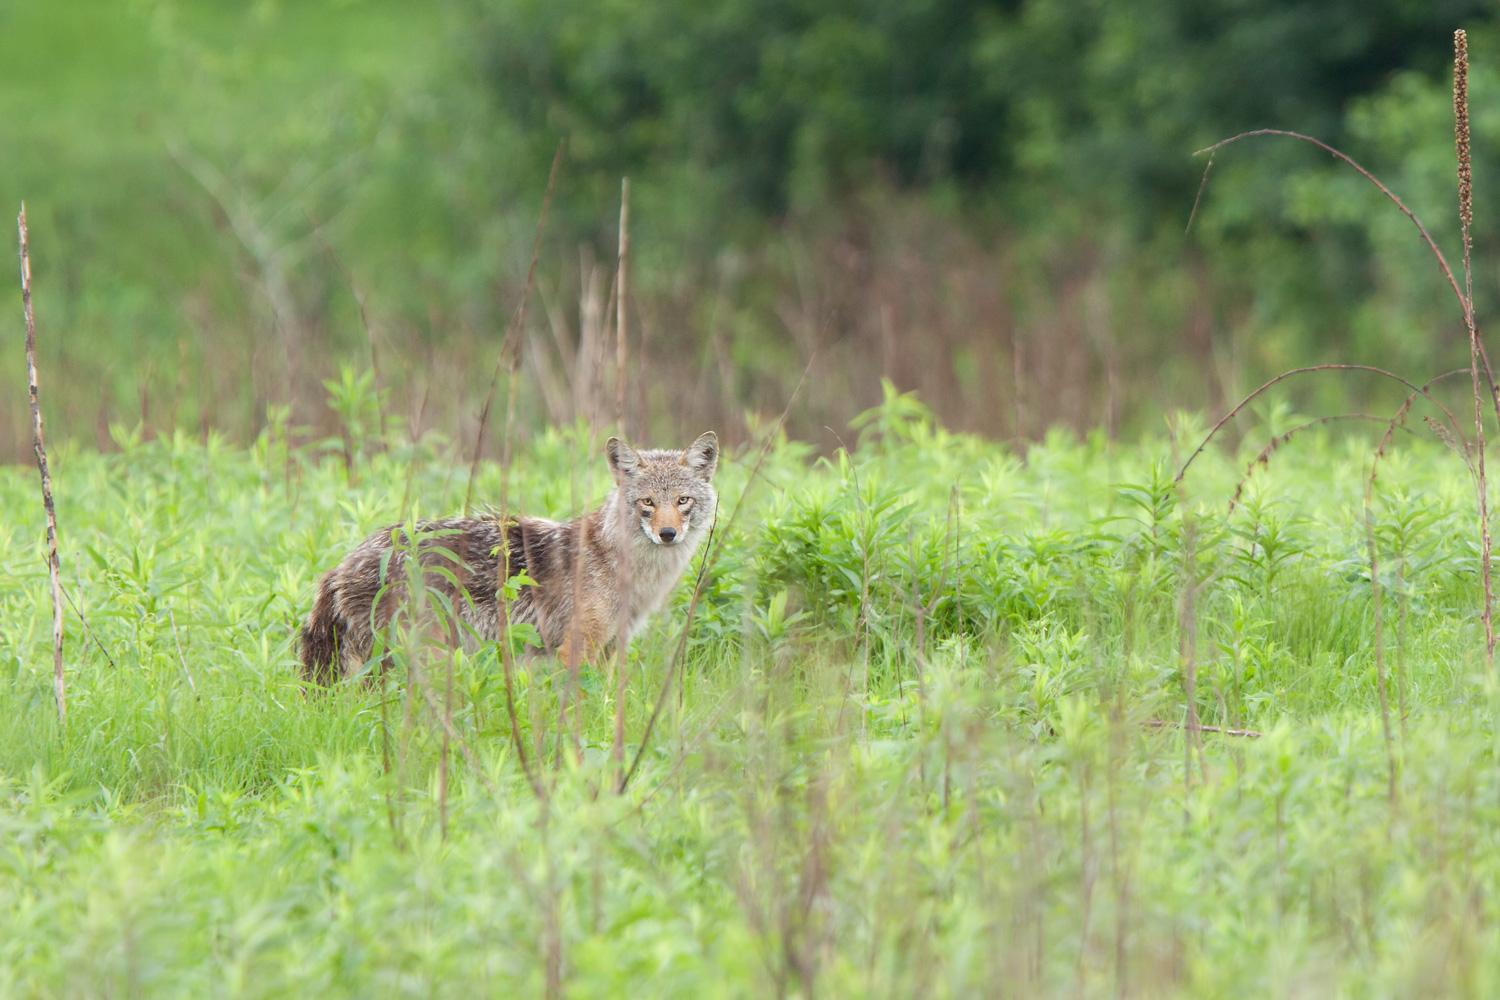 Suburban Coyote (Canis latrans) - White Bear Lake, MN  Canon 50D + Canon 300mm f2.8IS L + Canon 1.4x converter